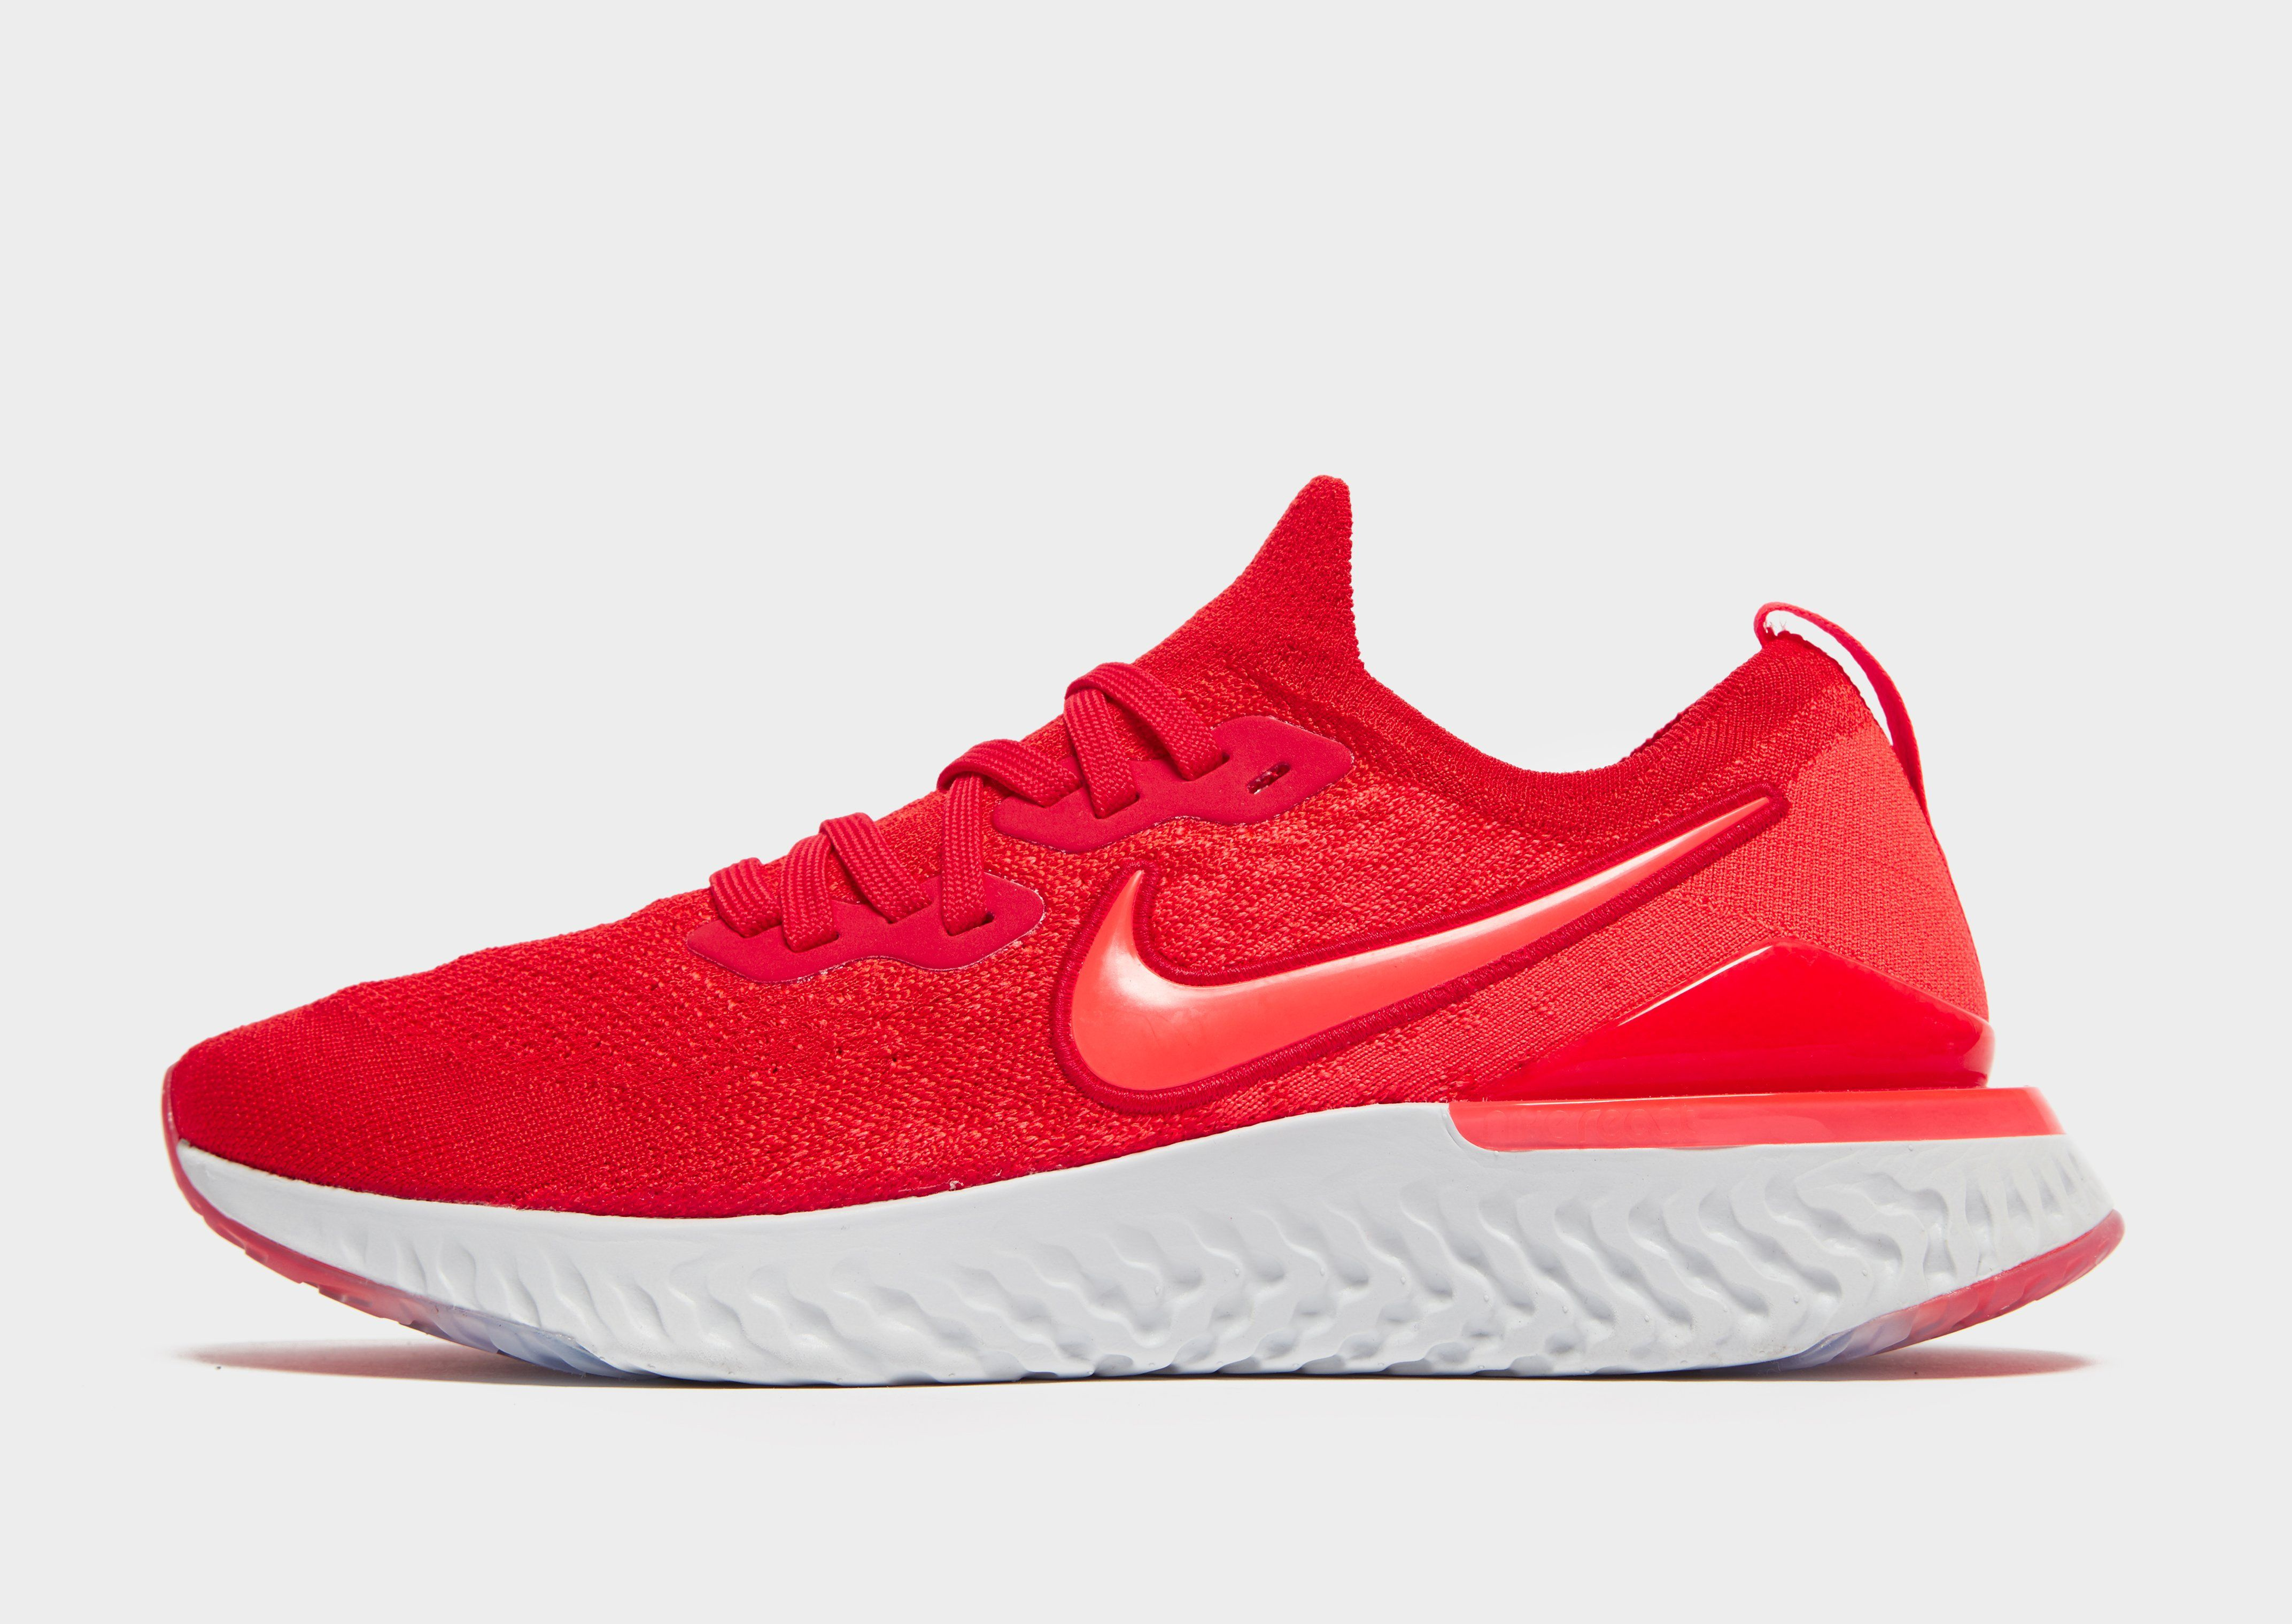 new arrival b45f3 70ae4 Nike Nike Epic React Flyknit 2 Men's Running Shoe | JD Sports